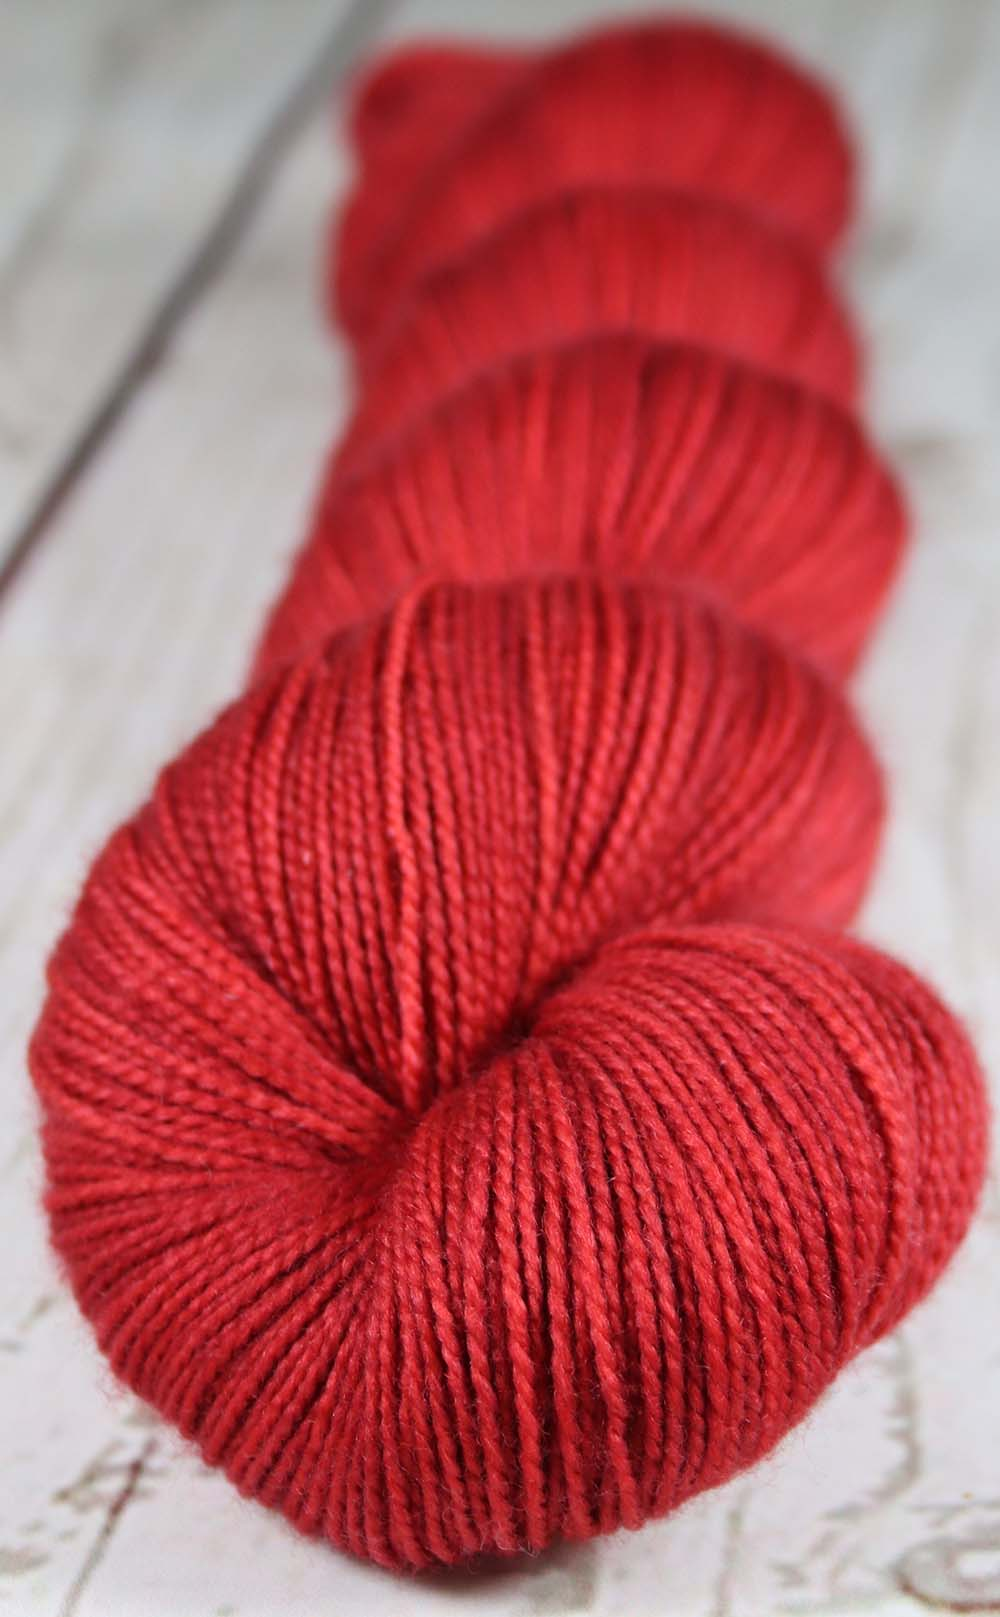 STRAWBERRIES WILD: SW Merino-Nylon Hand dyed Tonal sock yarn - Kauai base